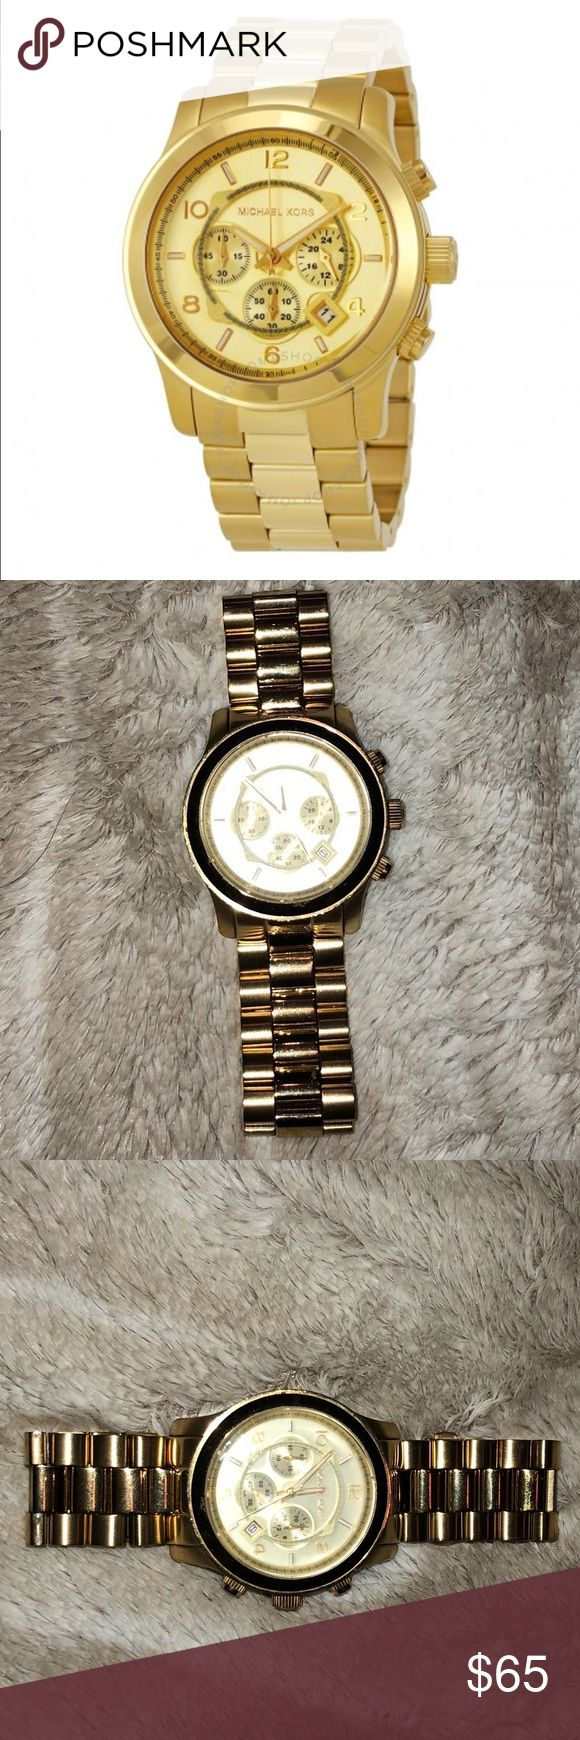 Gold Michael Kors Men's Watch Gold Tone Michael Kors watch. Battery needs to be replaced and extra links can be purchased on eBay.  No box or extra links - WATCH ONLY Michael Kors Accessories Watches